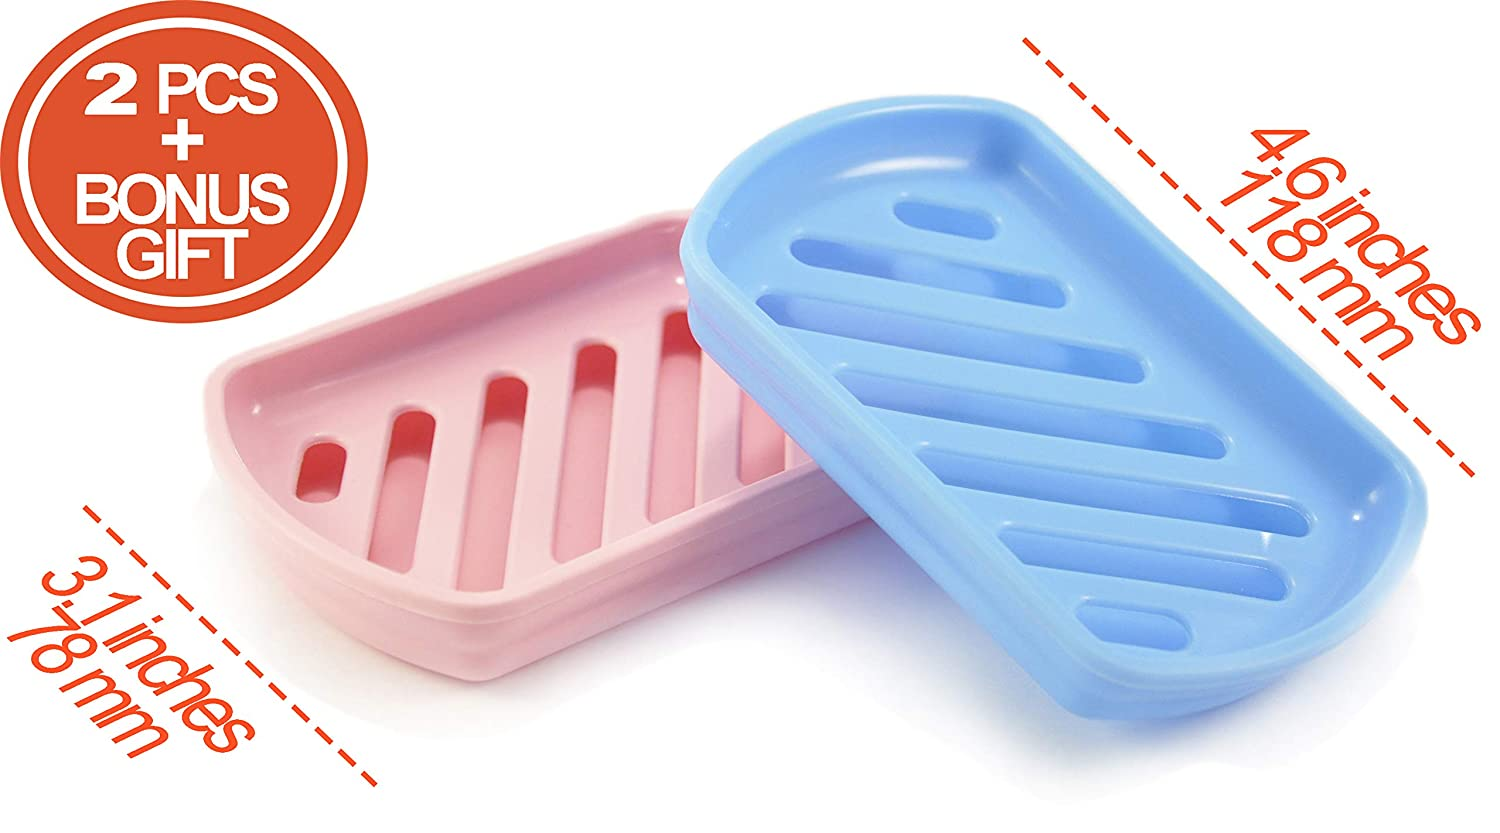 MHH 1003333 Soap dish trays 2 pcs with drain compact design for kitchen scrubber brush holder for soap bar bath sponge bathroom rose//blue soap saver /& dry tray simple two-layer drainer sink